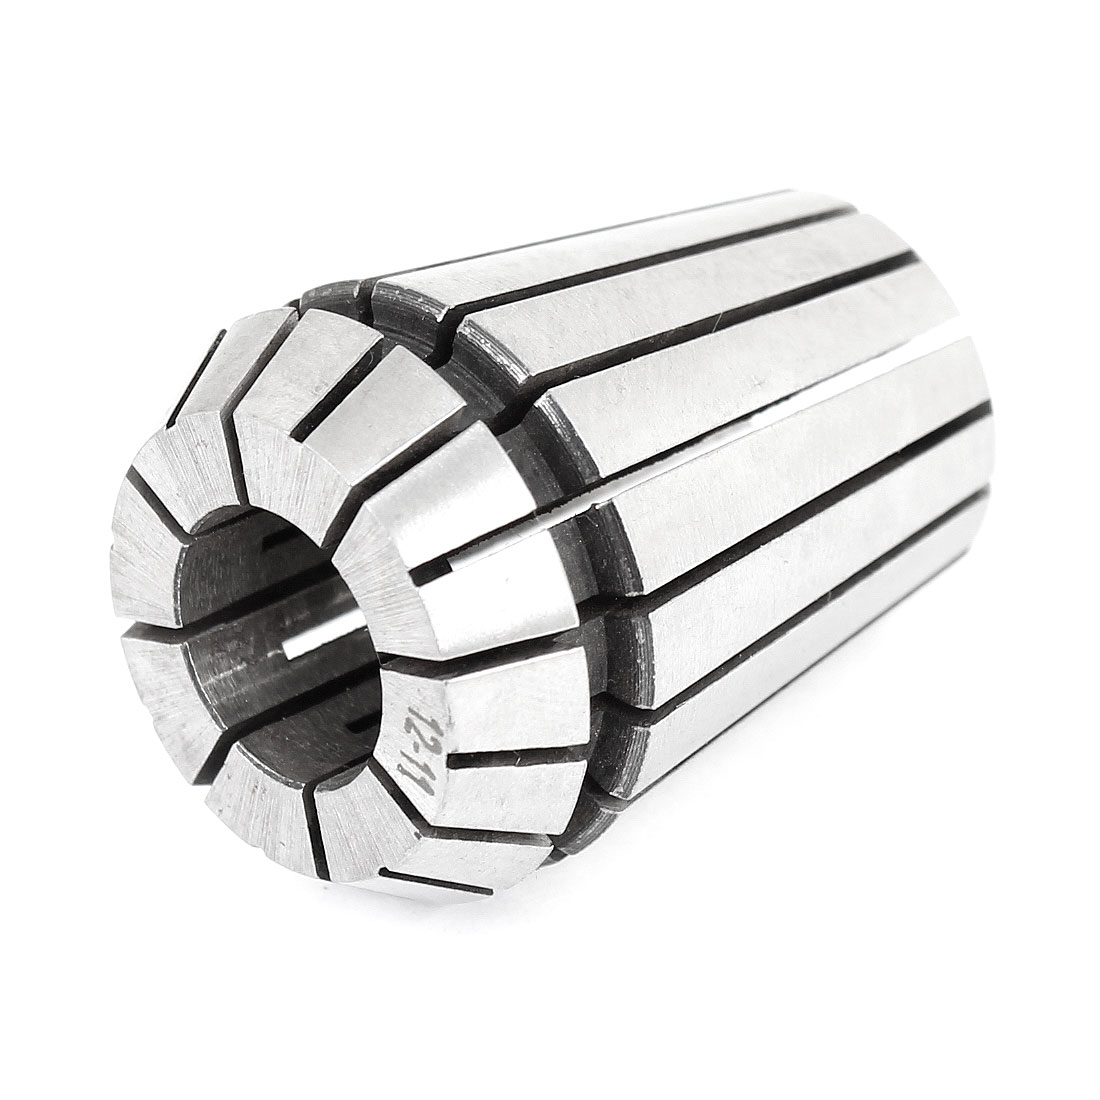 Clamping Range 12-11mm ER25 Precision Spring Collet Reaming Part